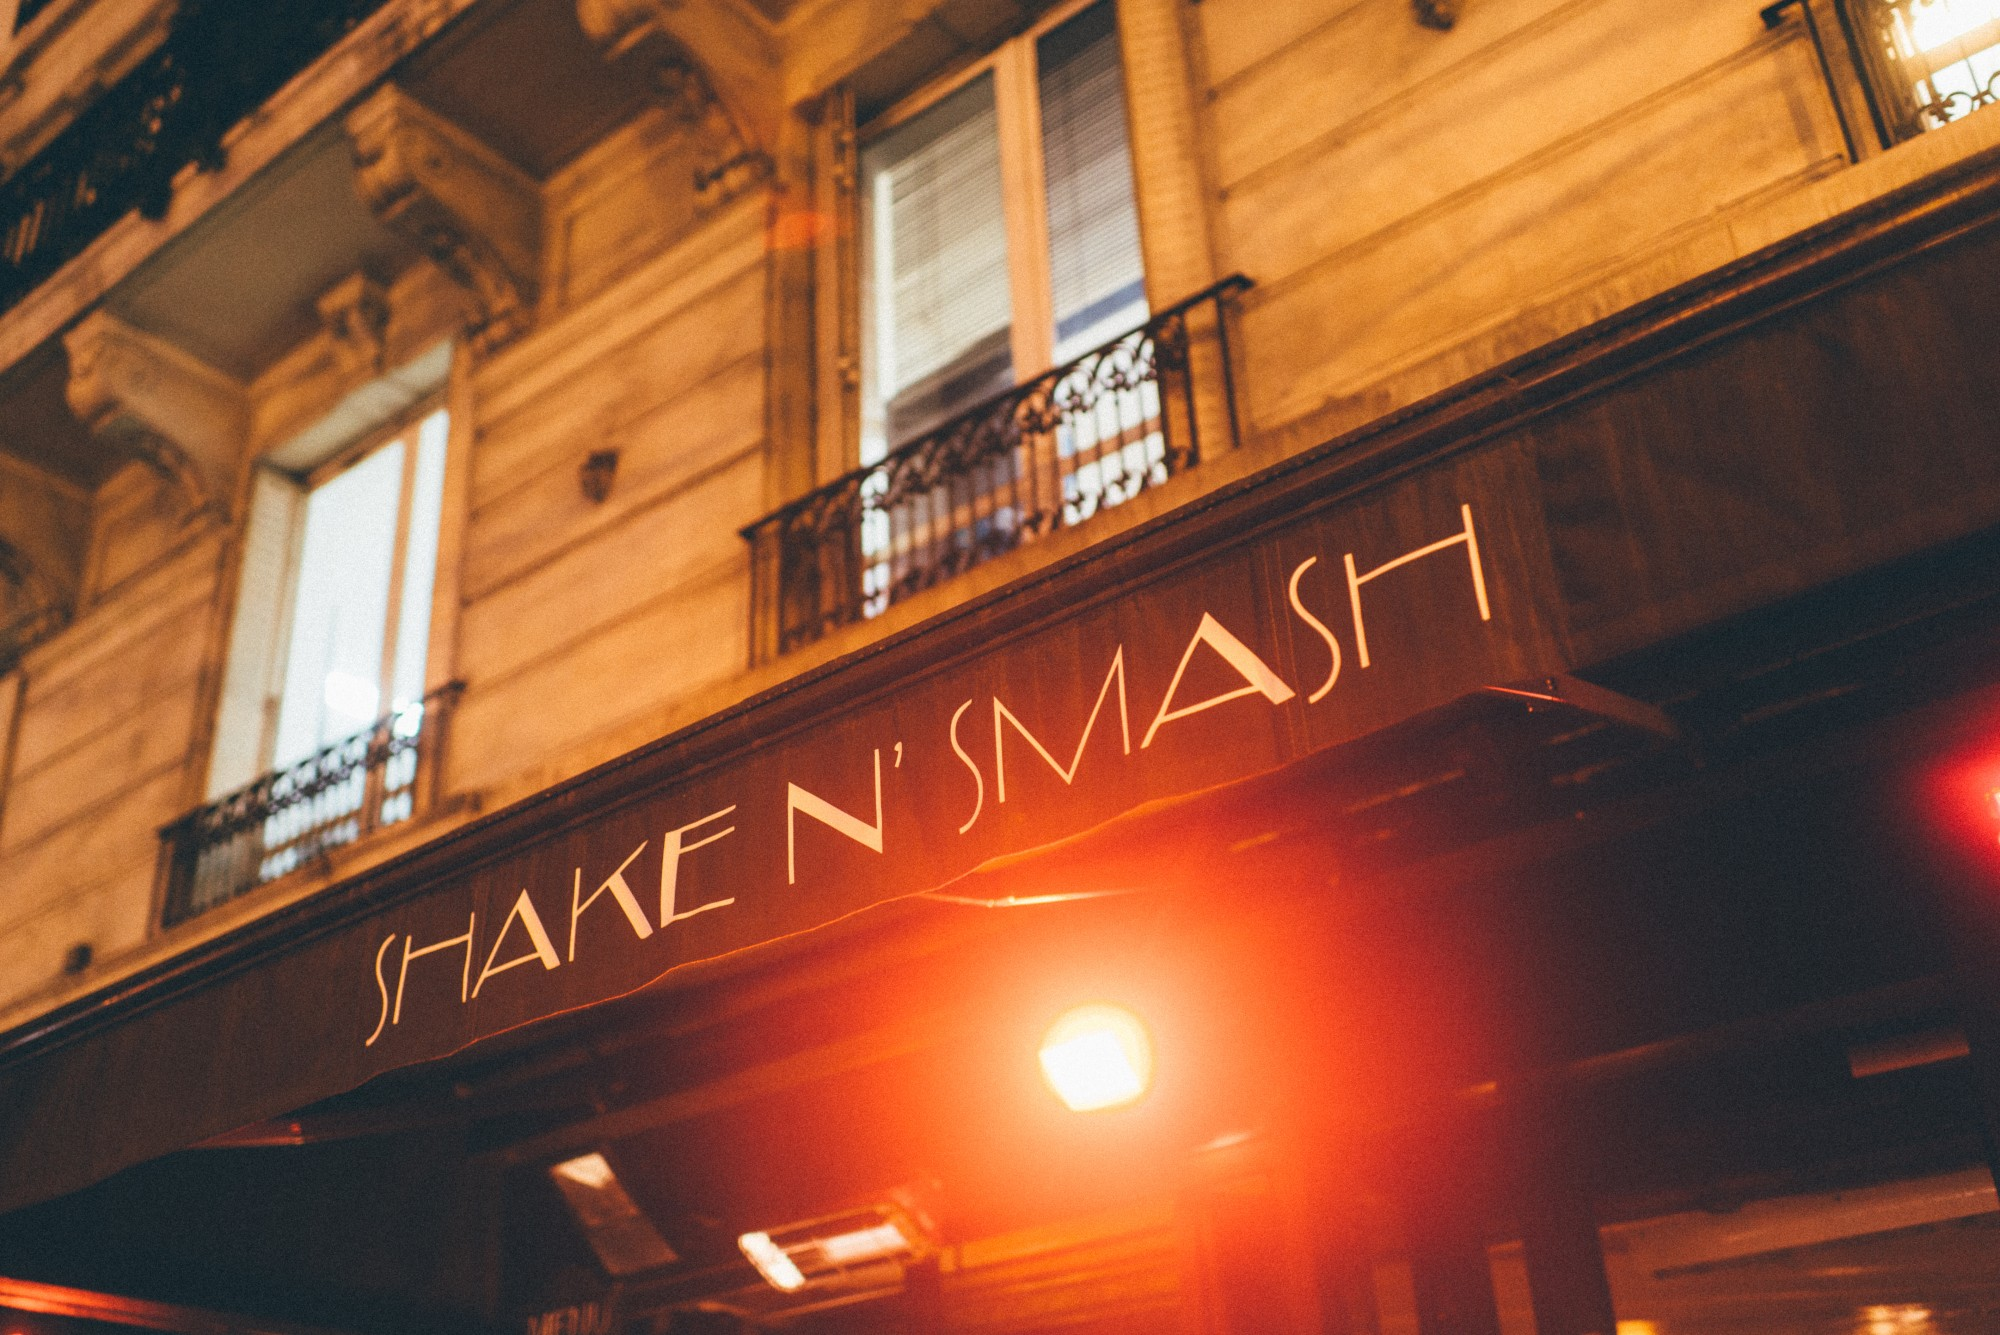 HiP Paris blog. The 3 most outrageous cocktails in Paris. Awning of Shake n' Smash. Photo by Jean-Marie Heidinger.